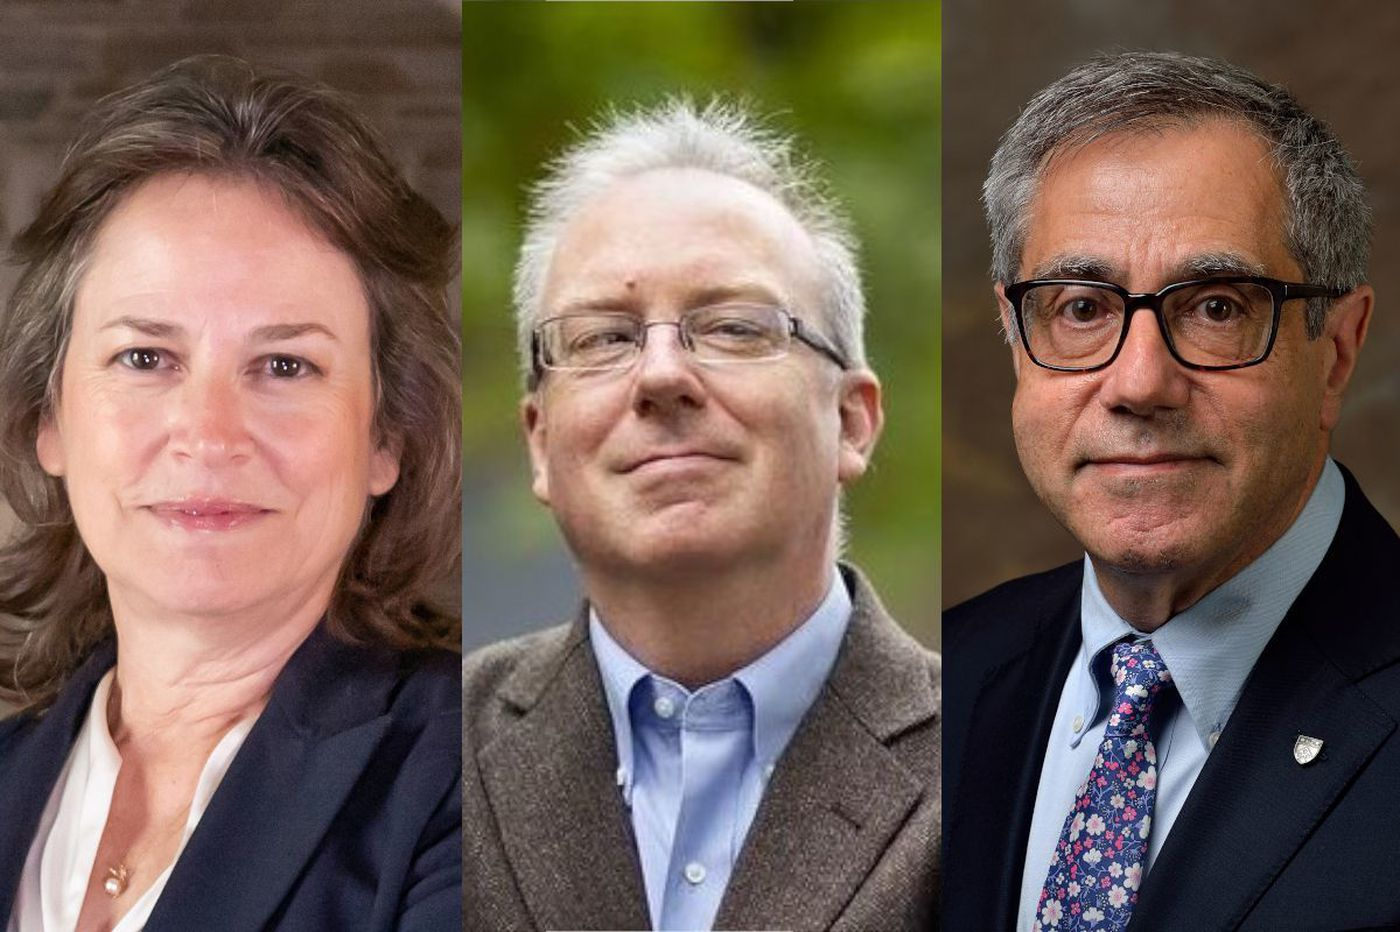 Philadelphia science prize goes to climate change and electronics researchers from Penn, UCLA